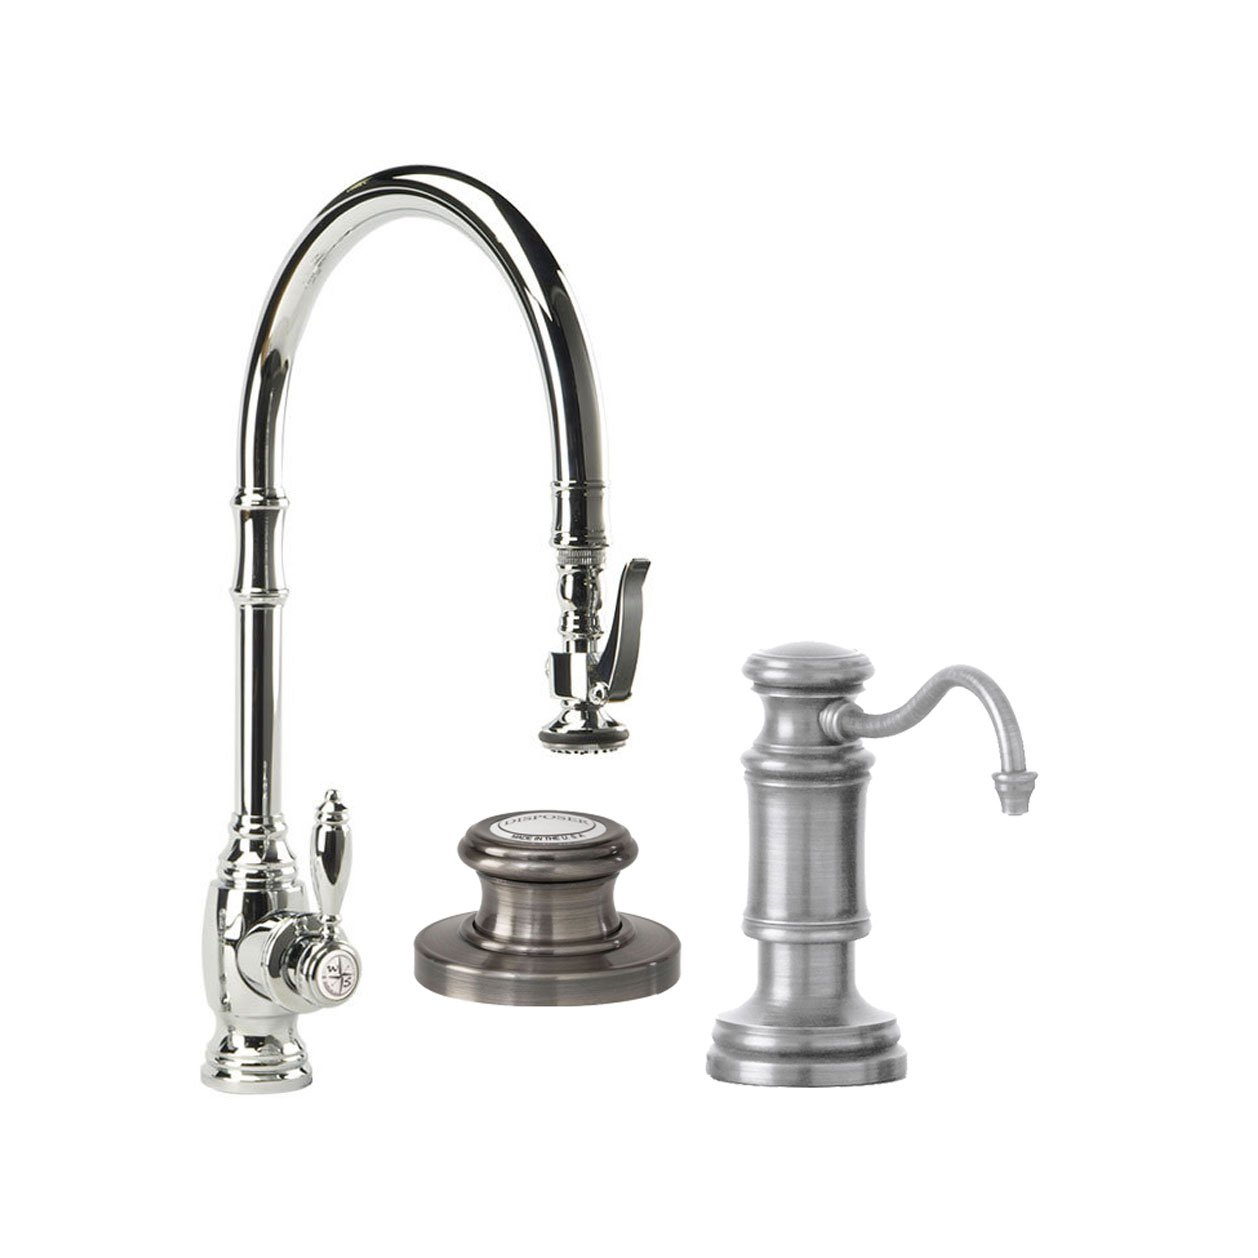 Waterstone 5500-3-SN Annapolis Single Handle Kitchen Faucet with Pull Out Spray, Soap Dispenser and Air Switch, Satin Nickel